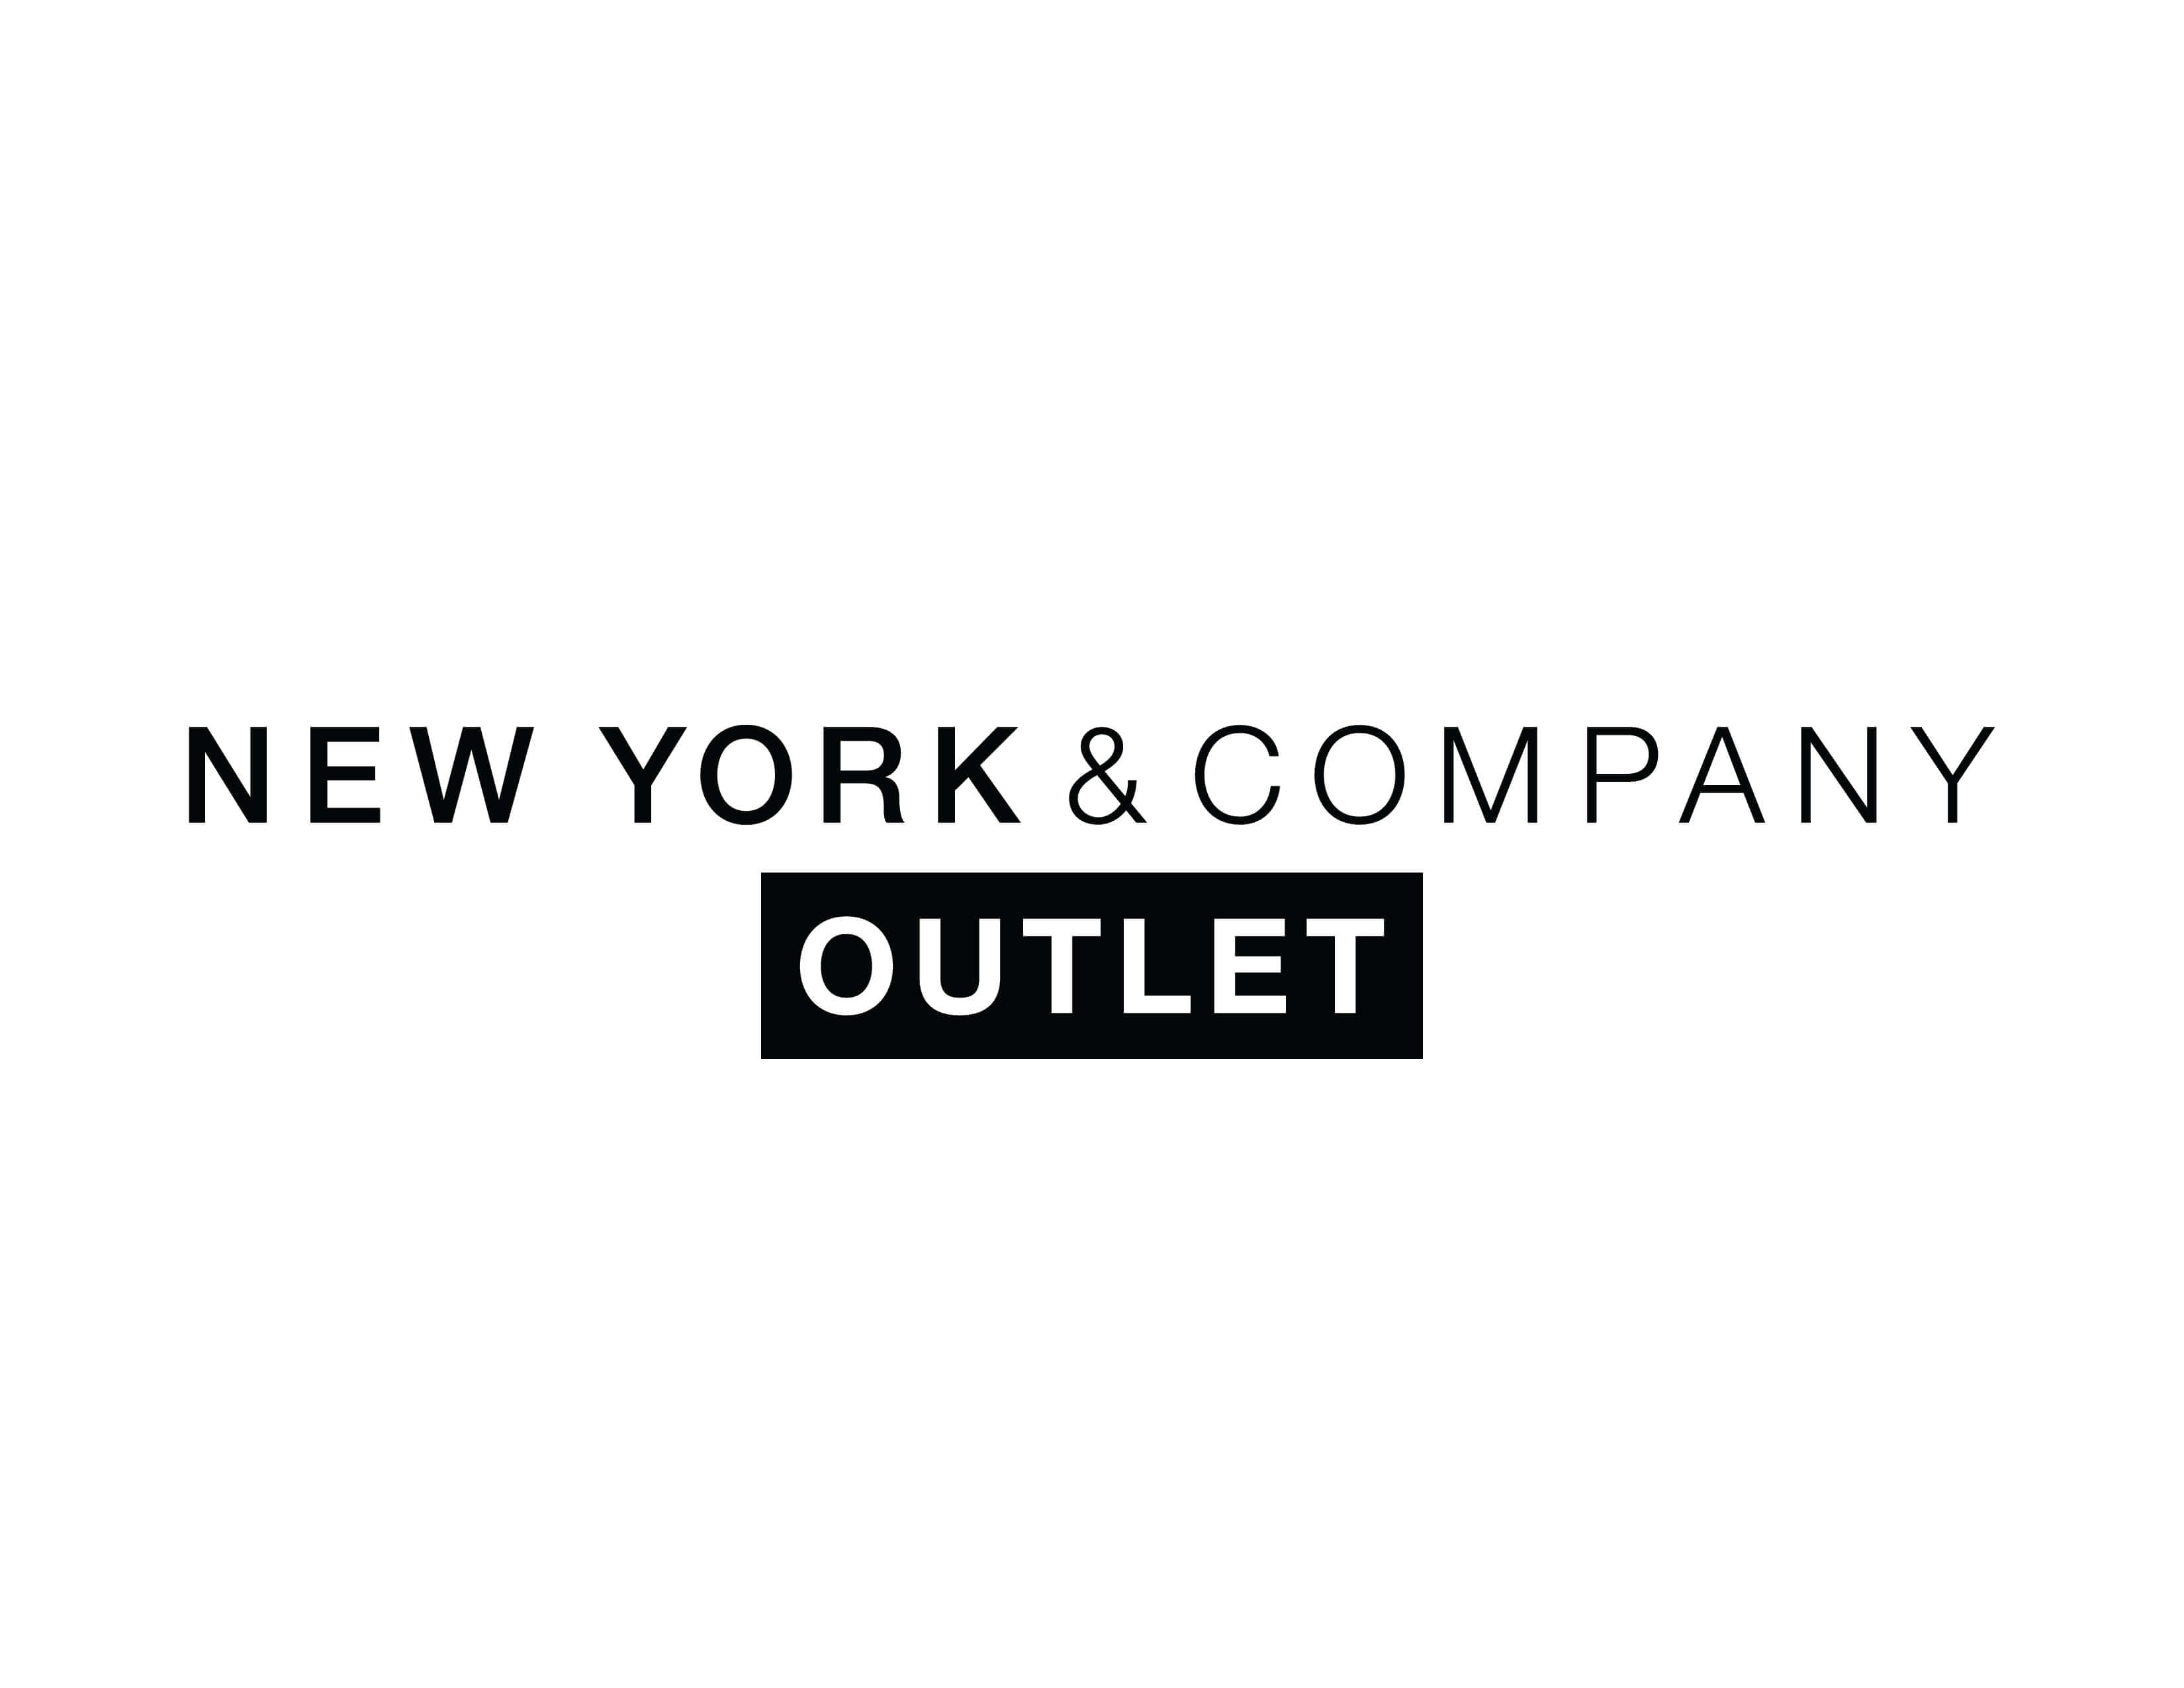 New York & Company Outlet Logo